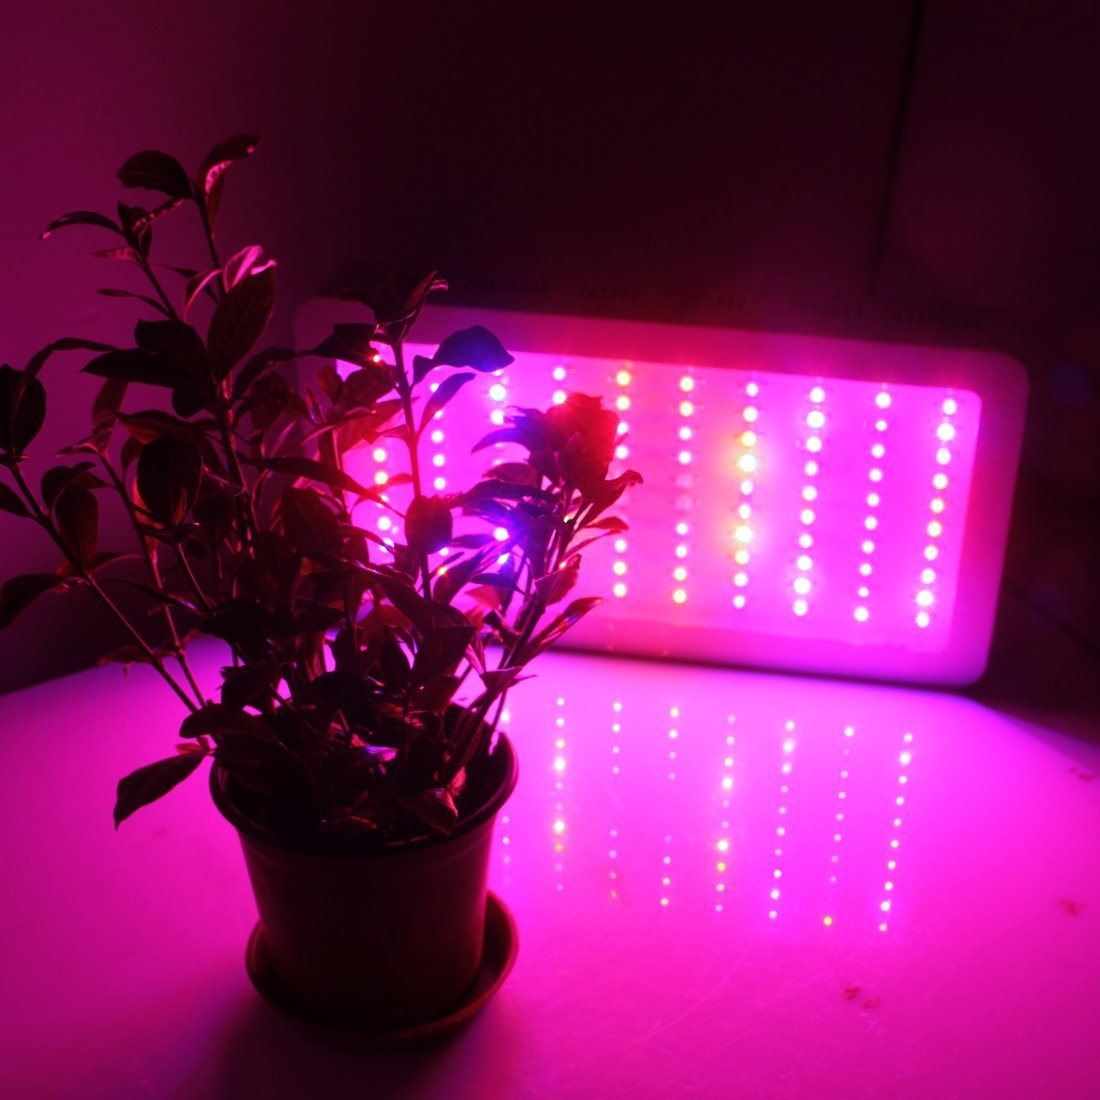 Amazon hhe 300w led grow light full spectrum for indoor plant amazon hhe 300w led grow light full spectrum for indoor plant growingsilver home kitchen parisarafo Image collections